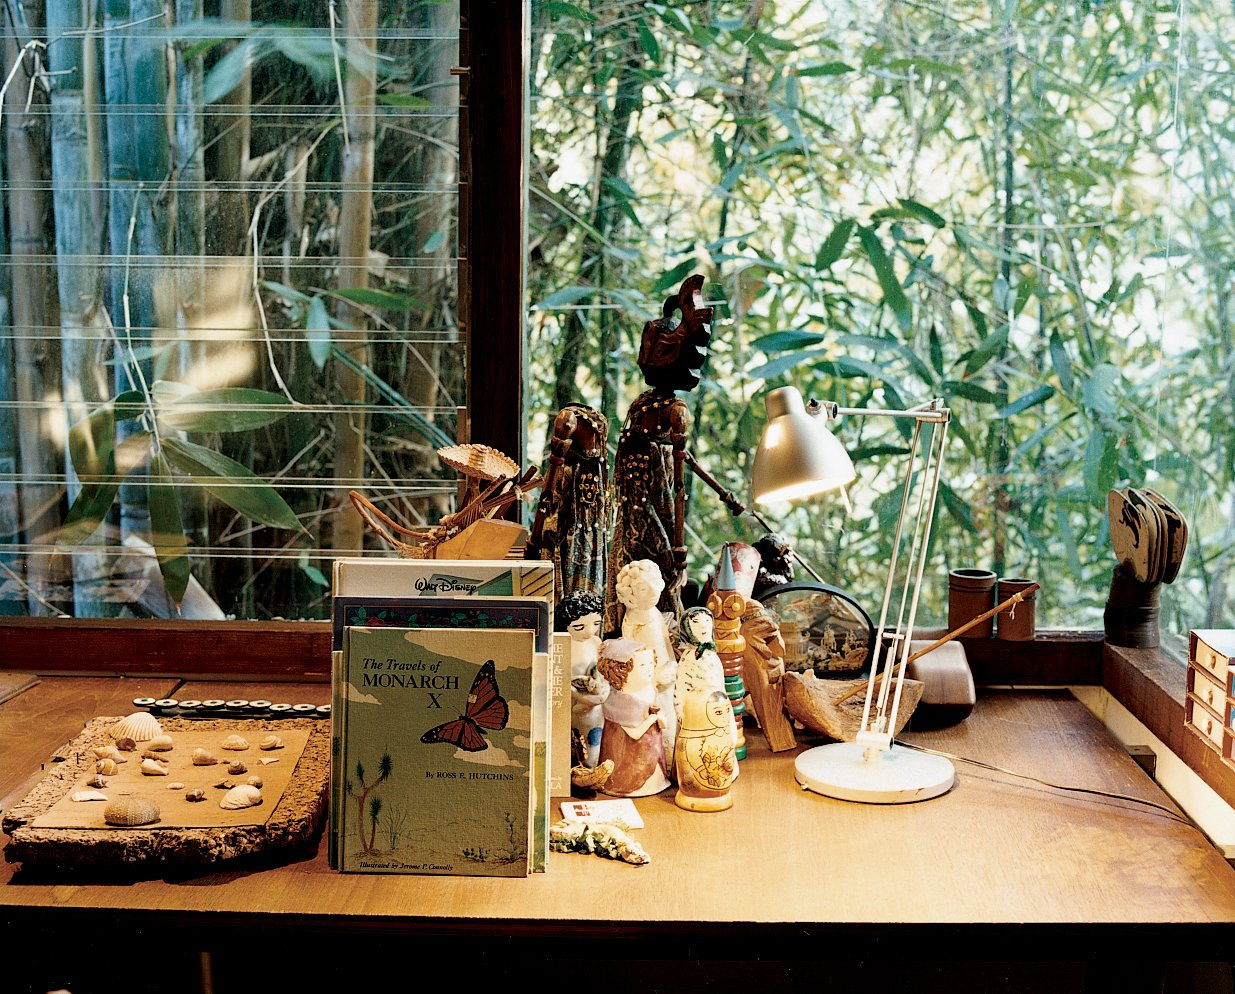 Kids Room and Bedroom Room Type The grandchildrens' room, on the same, well-lit side of the house as Ray's office, is adorned with dolls and books.  Photo 7 of 12 in Ray Kappe-Designed Multilevel House in Los Angeles